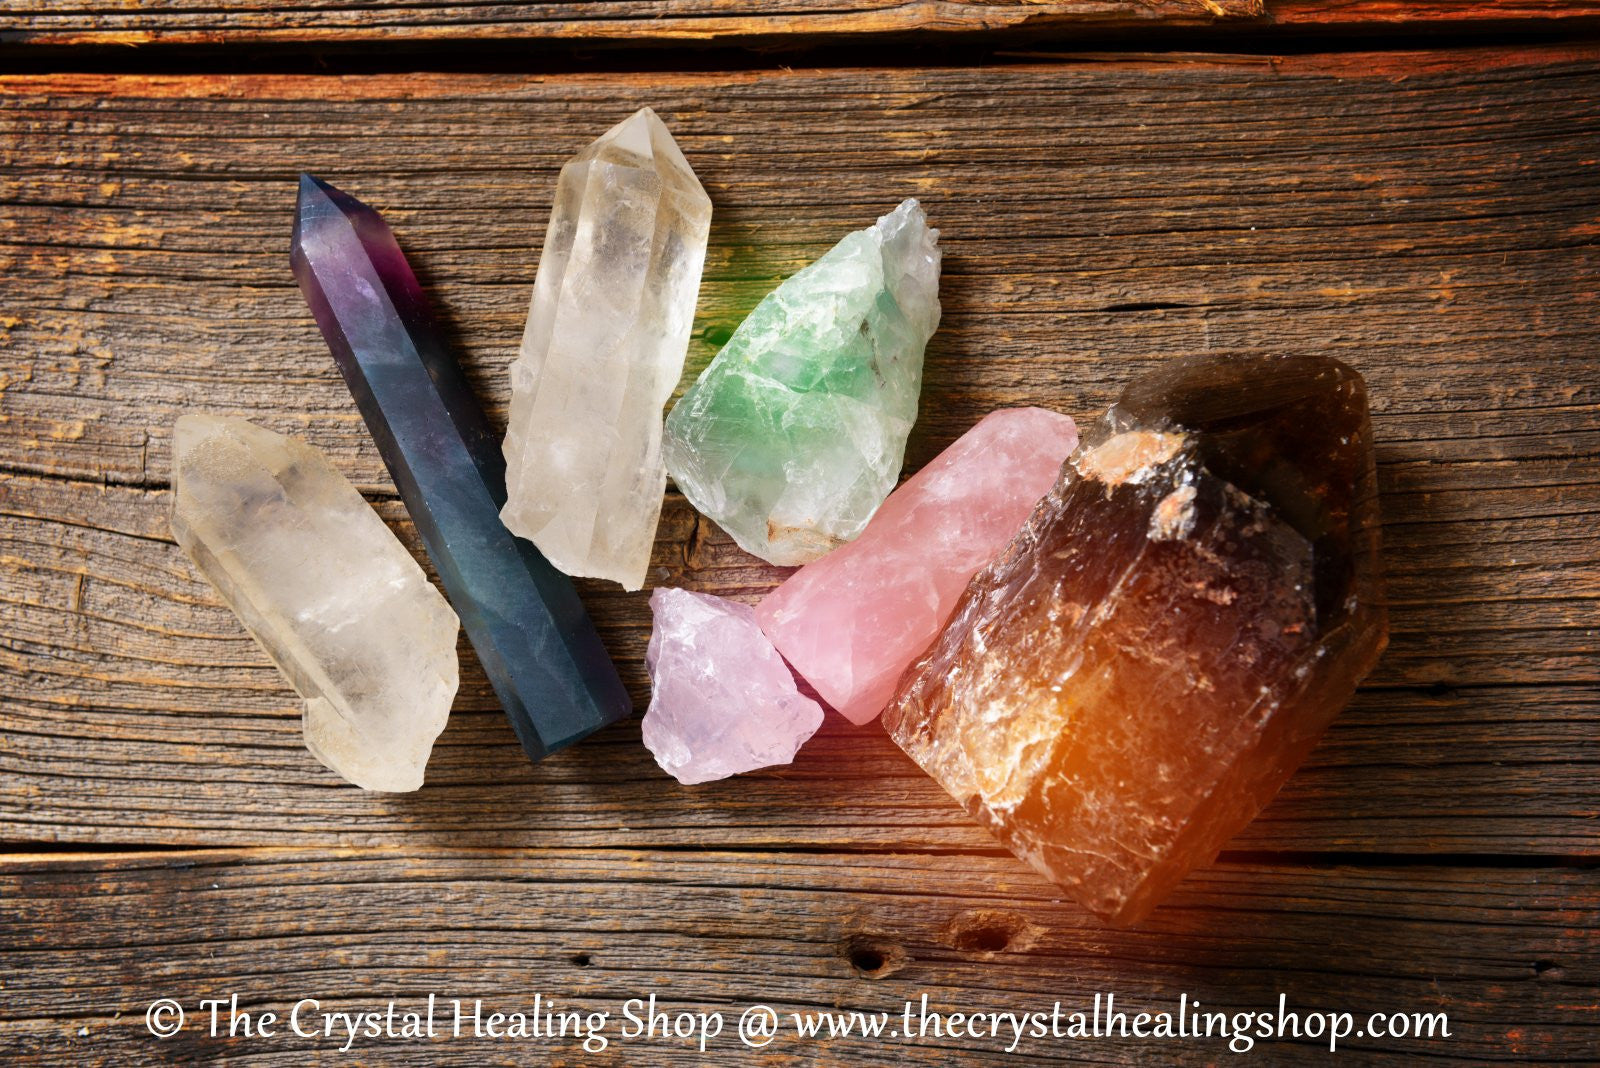 Polished Crystals @ The Crystal Healing Shop